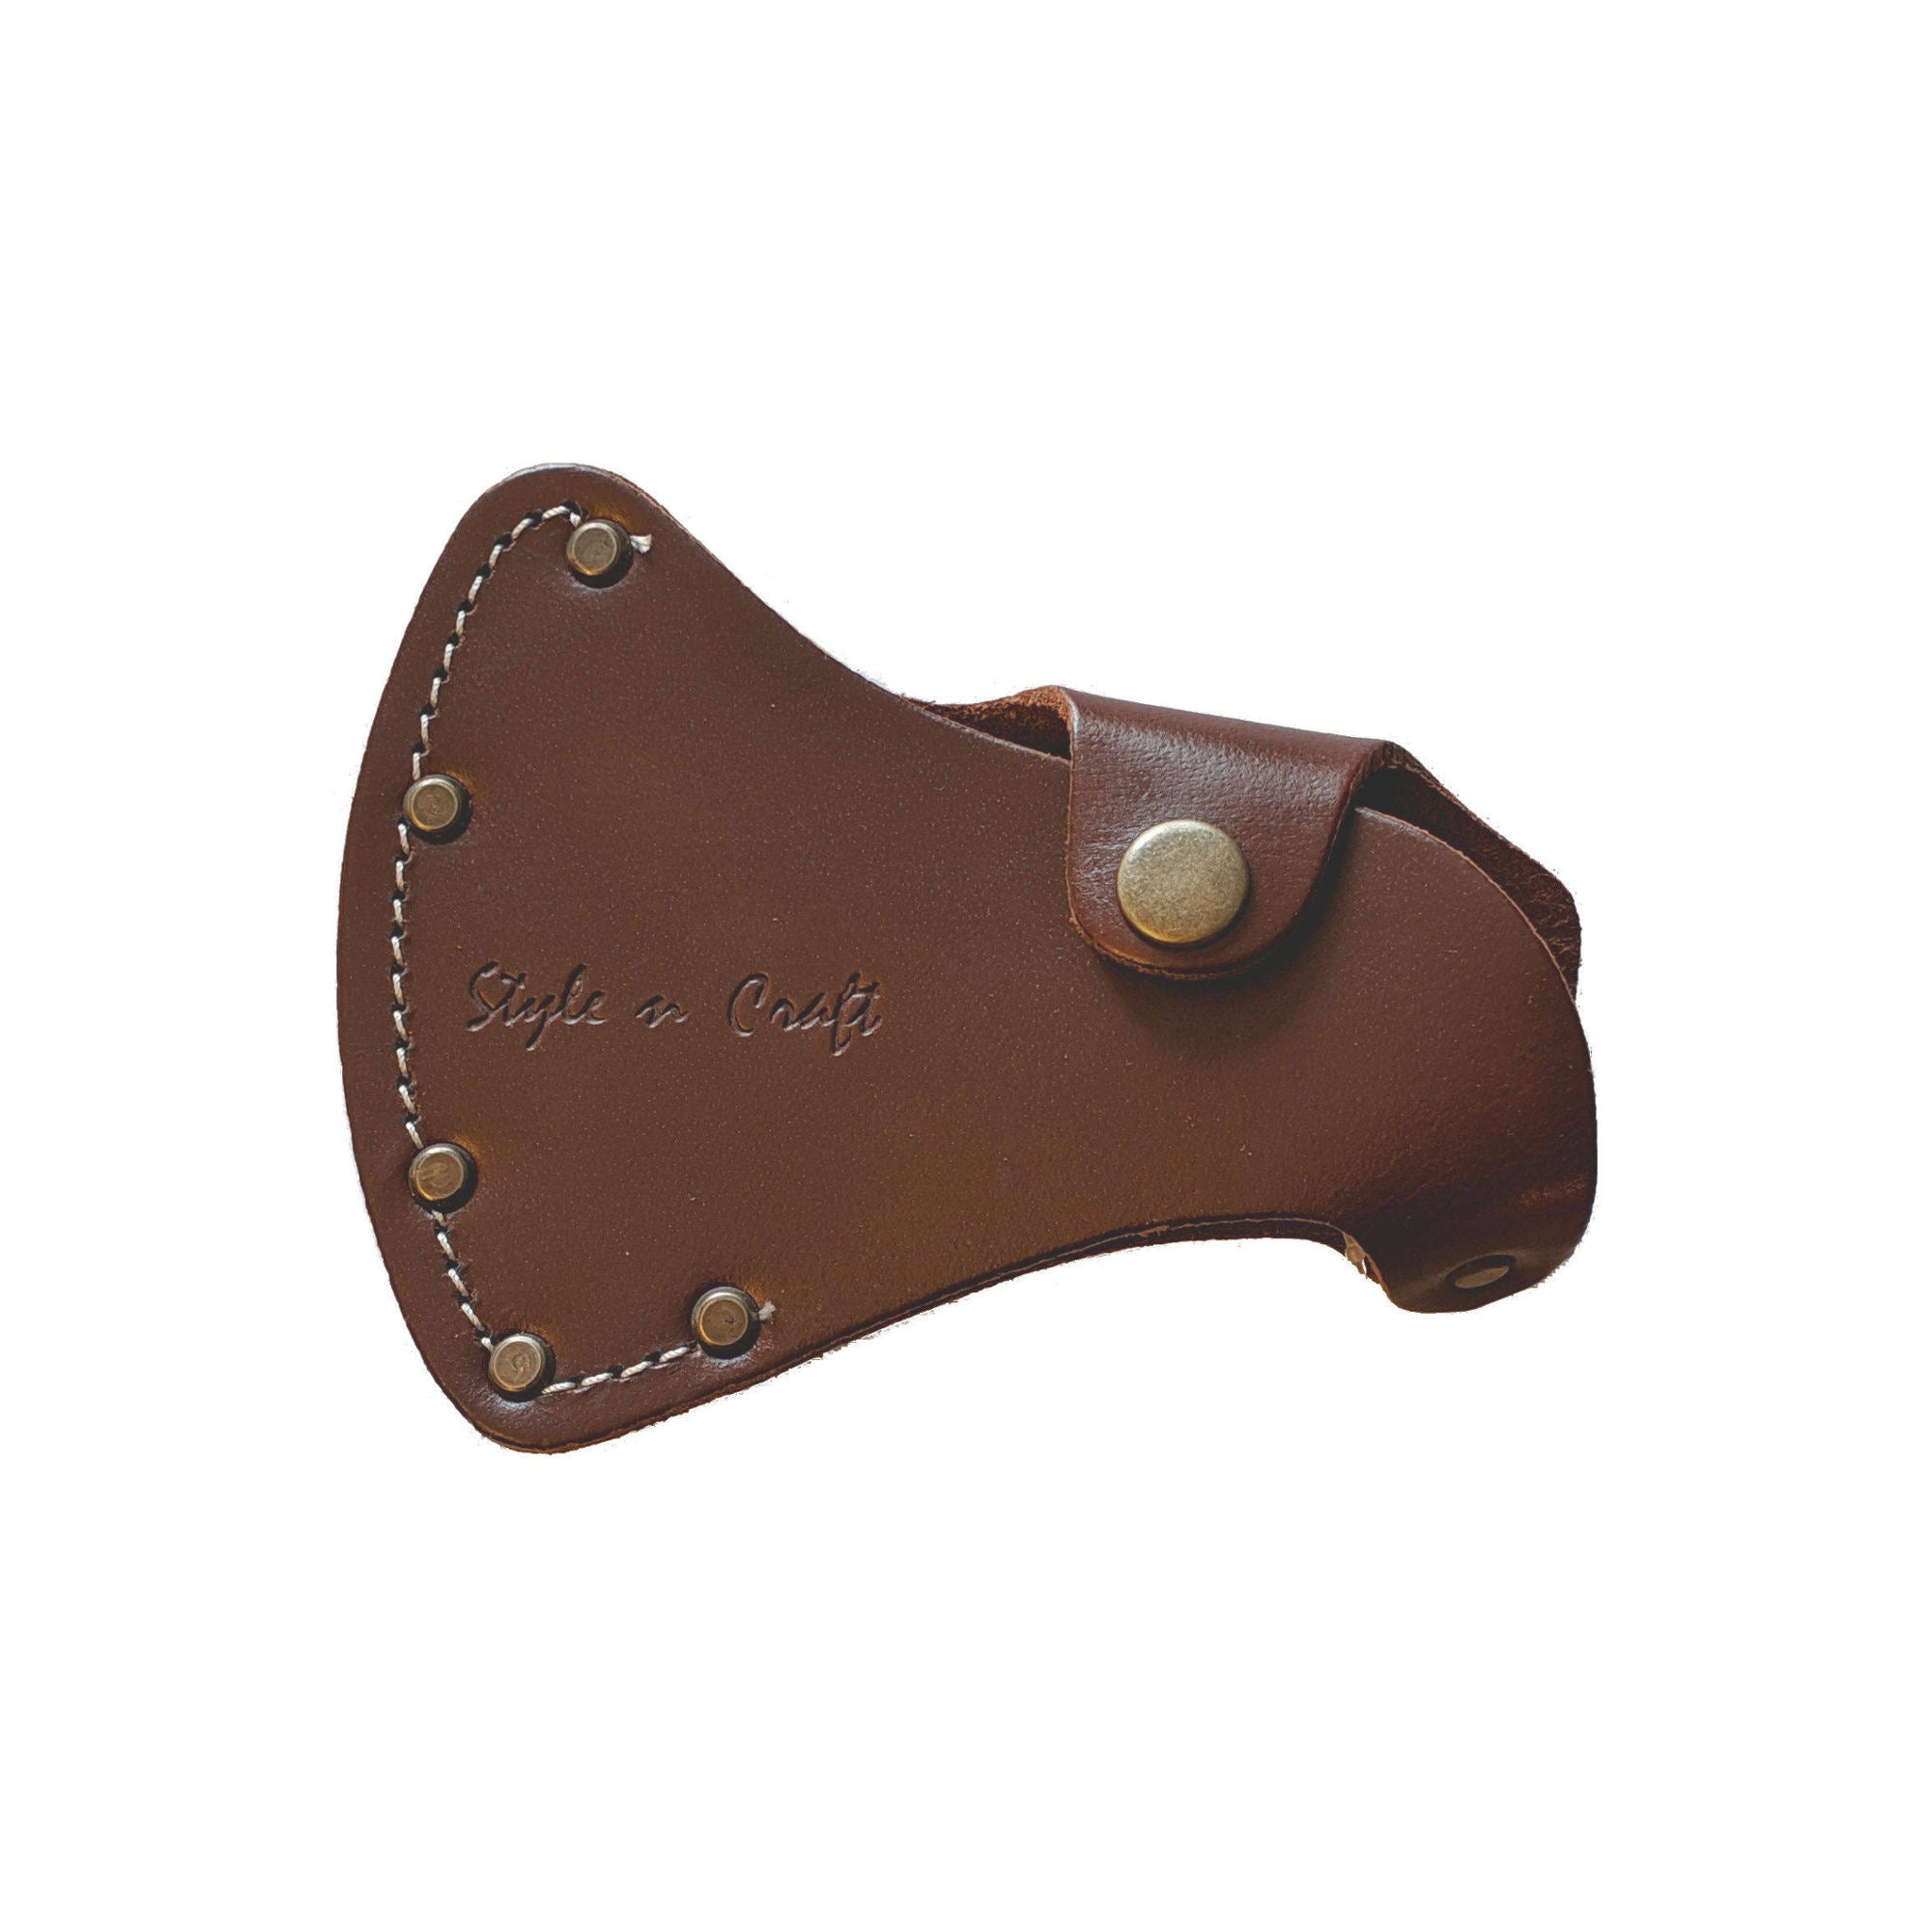 Style n Craft 98026 - Sportsman's Axe Sheath / Axe Cover in Heavy Top Grain Leather in Dark Tan Color